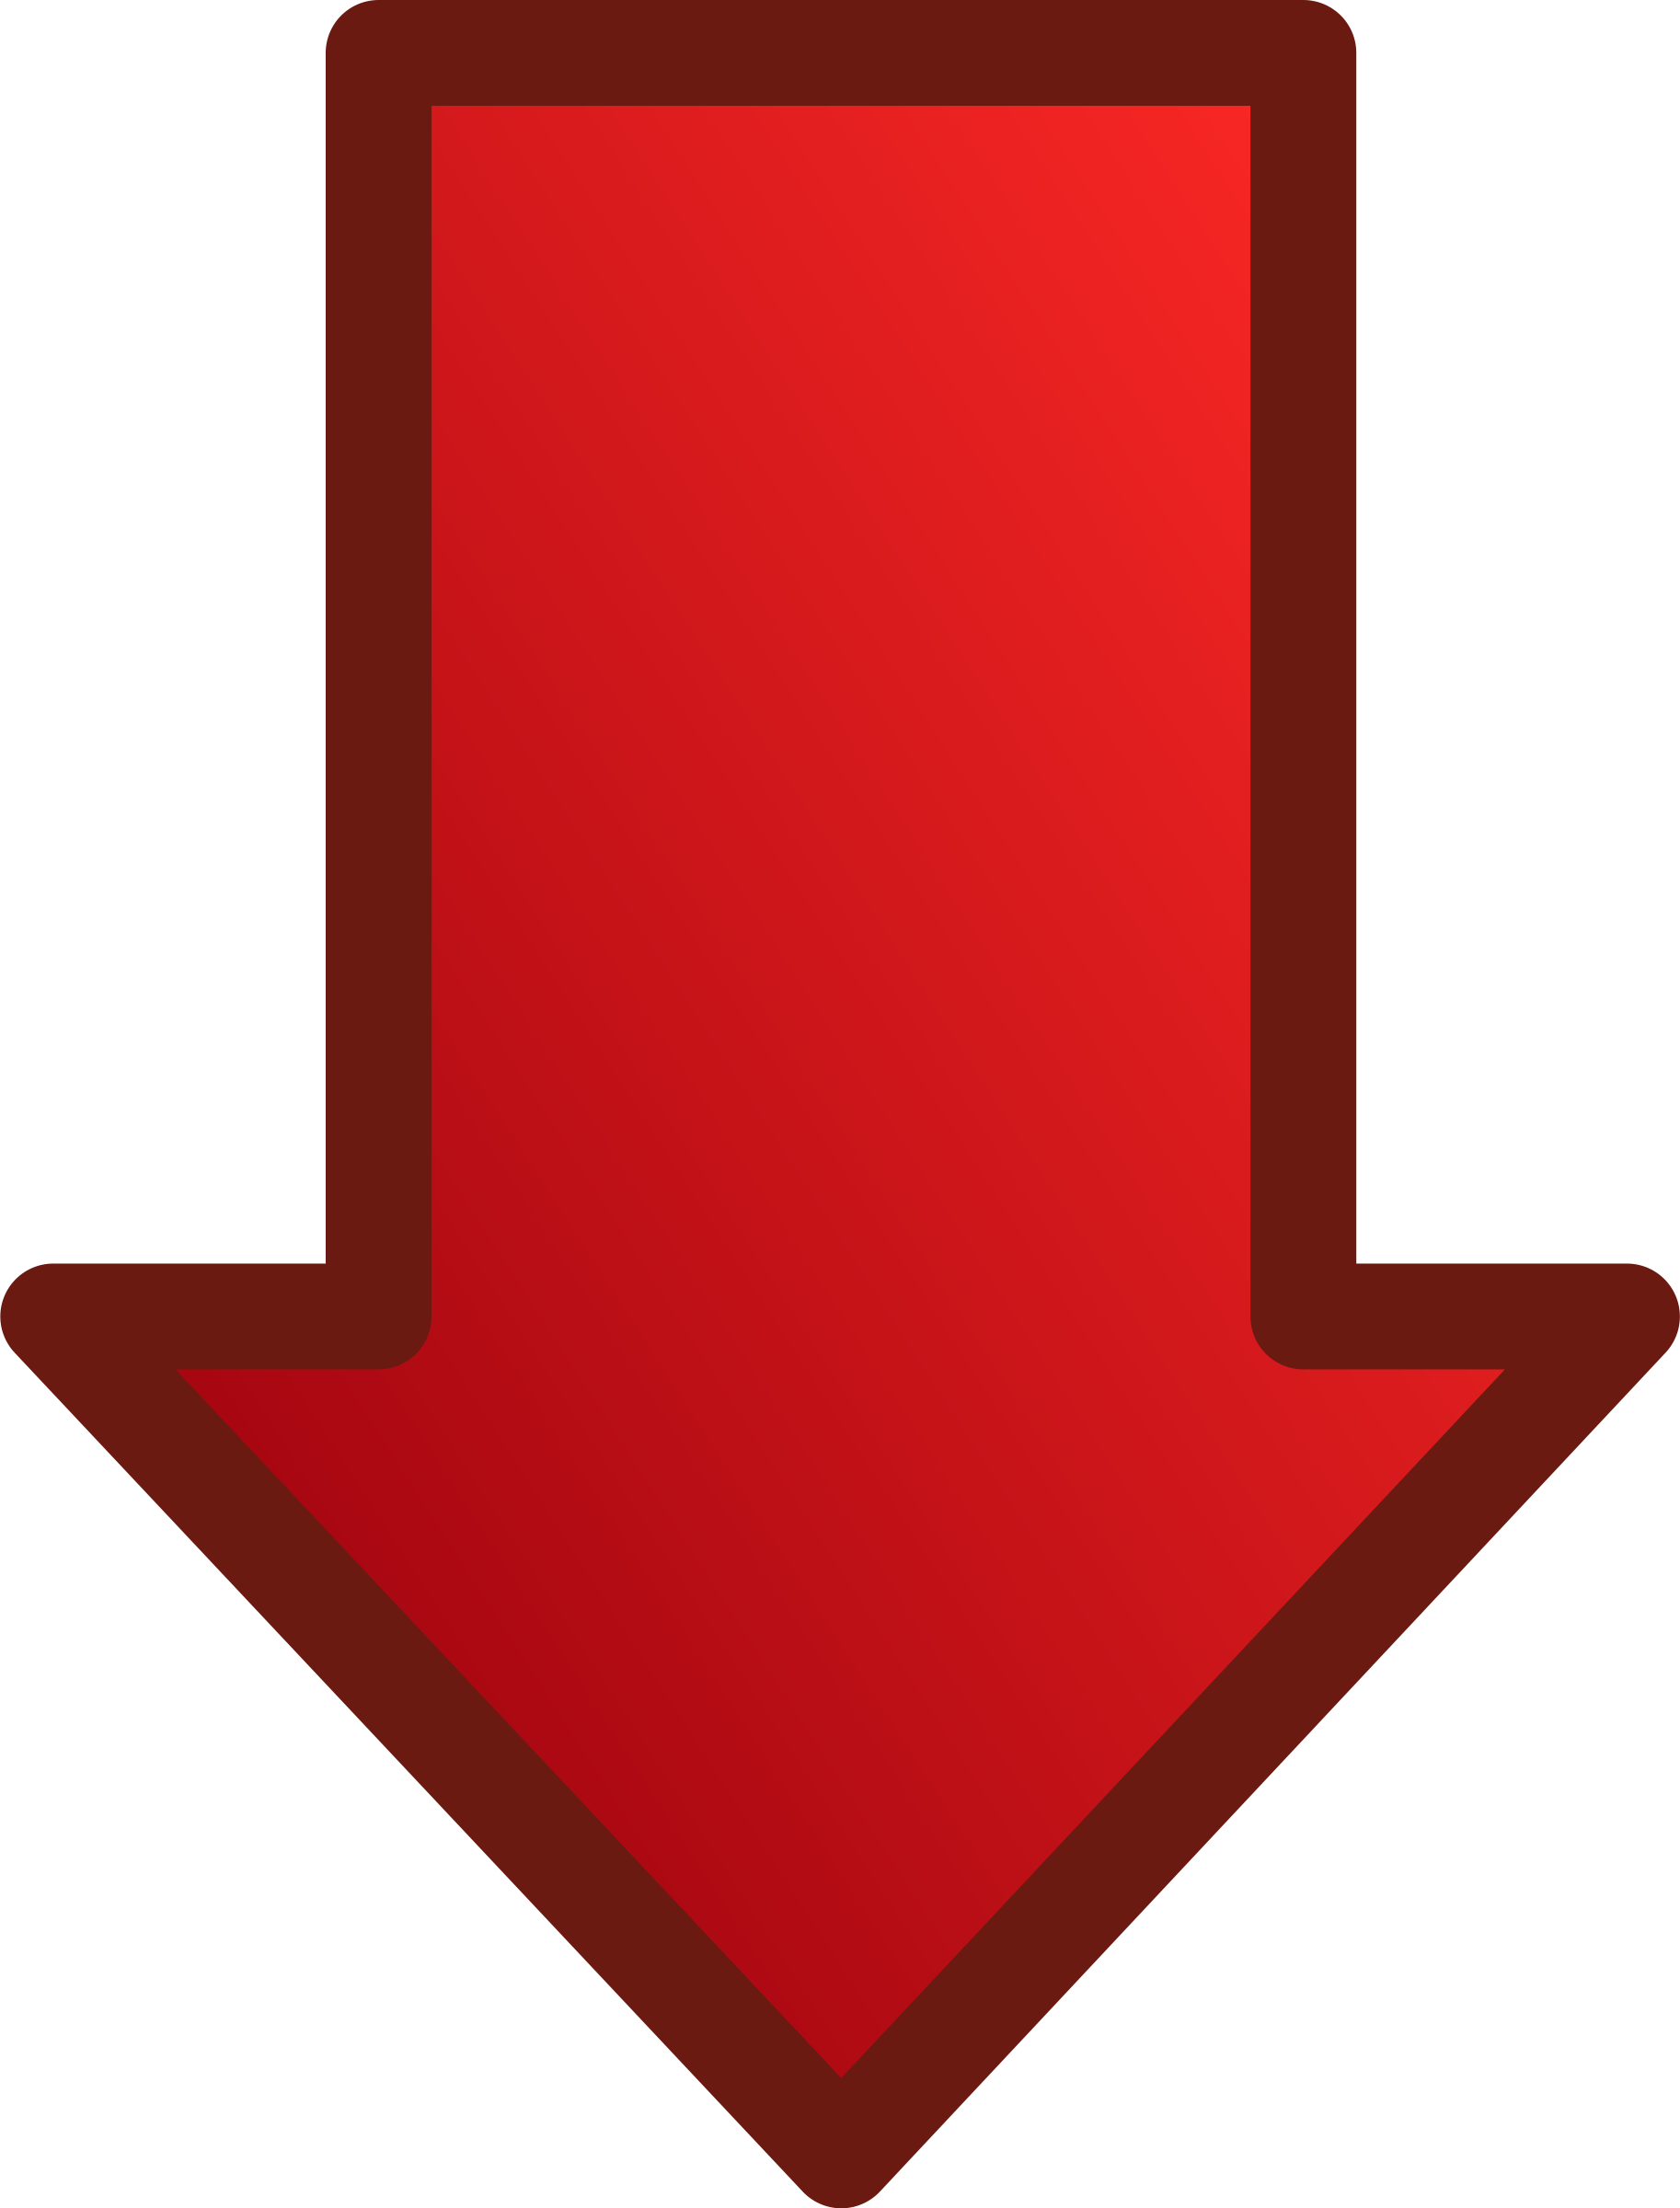 Set big image png. Clipart arrows red